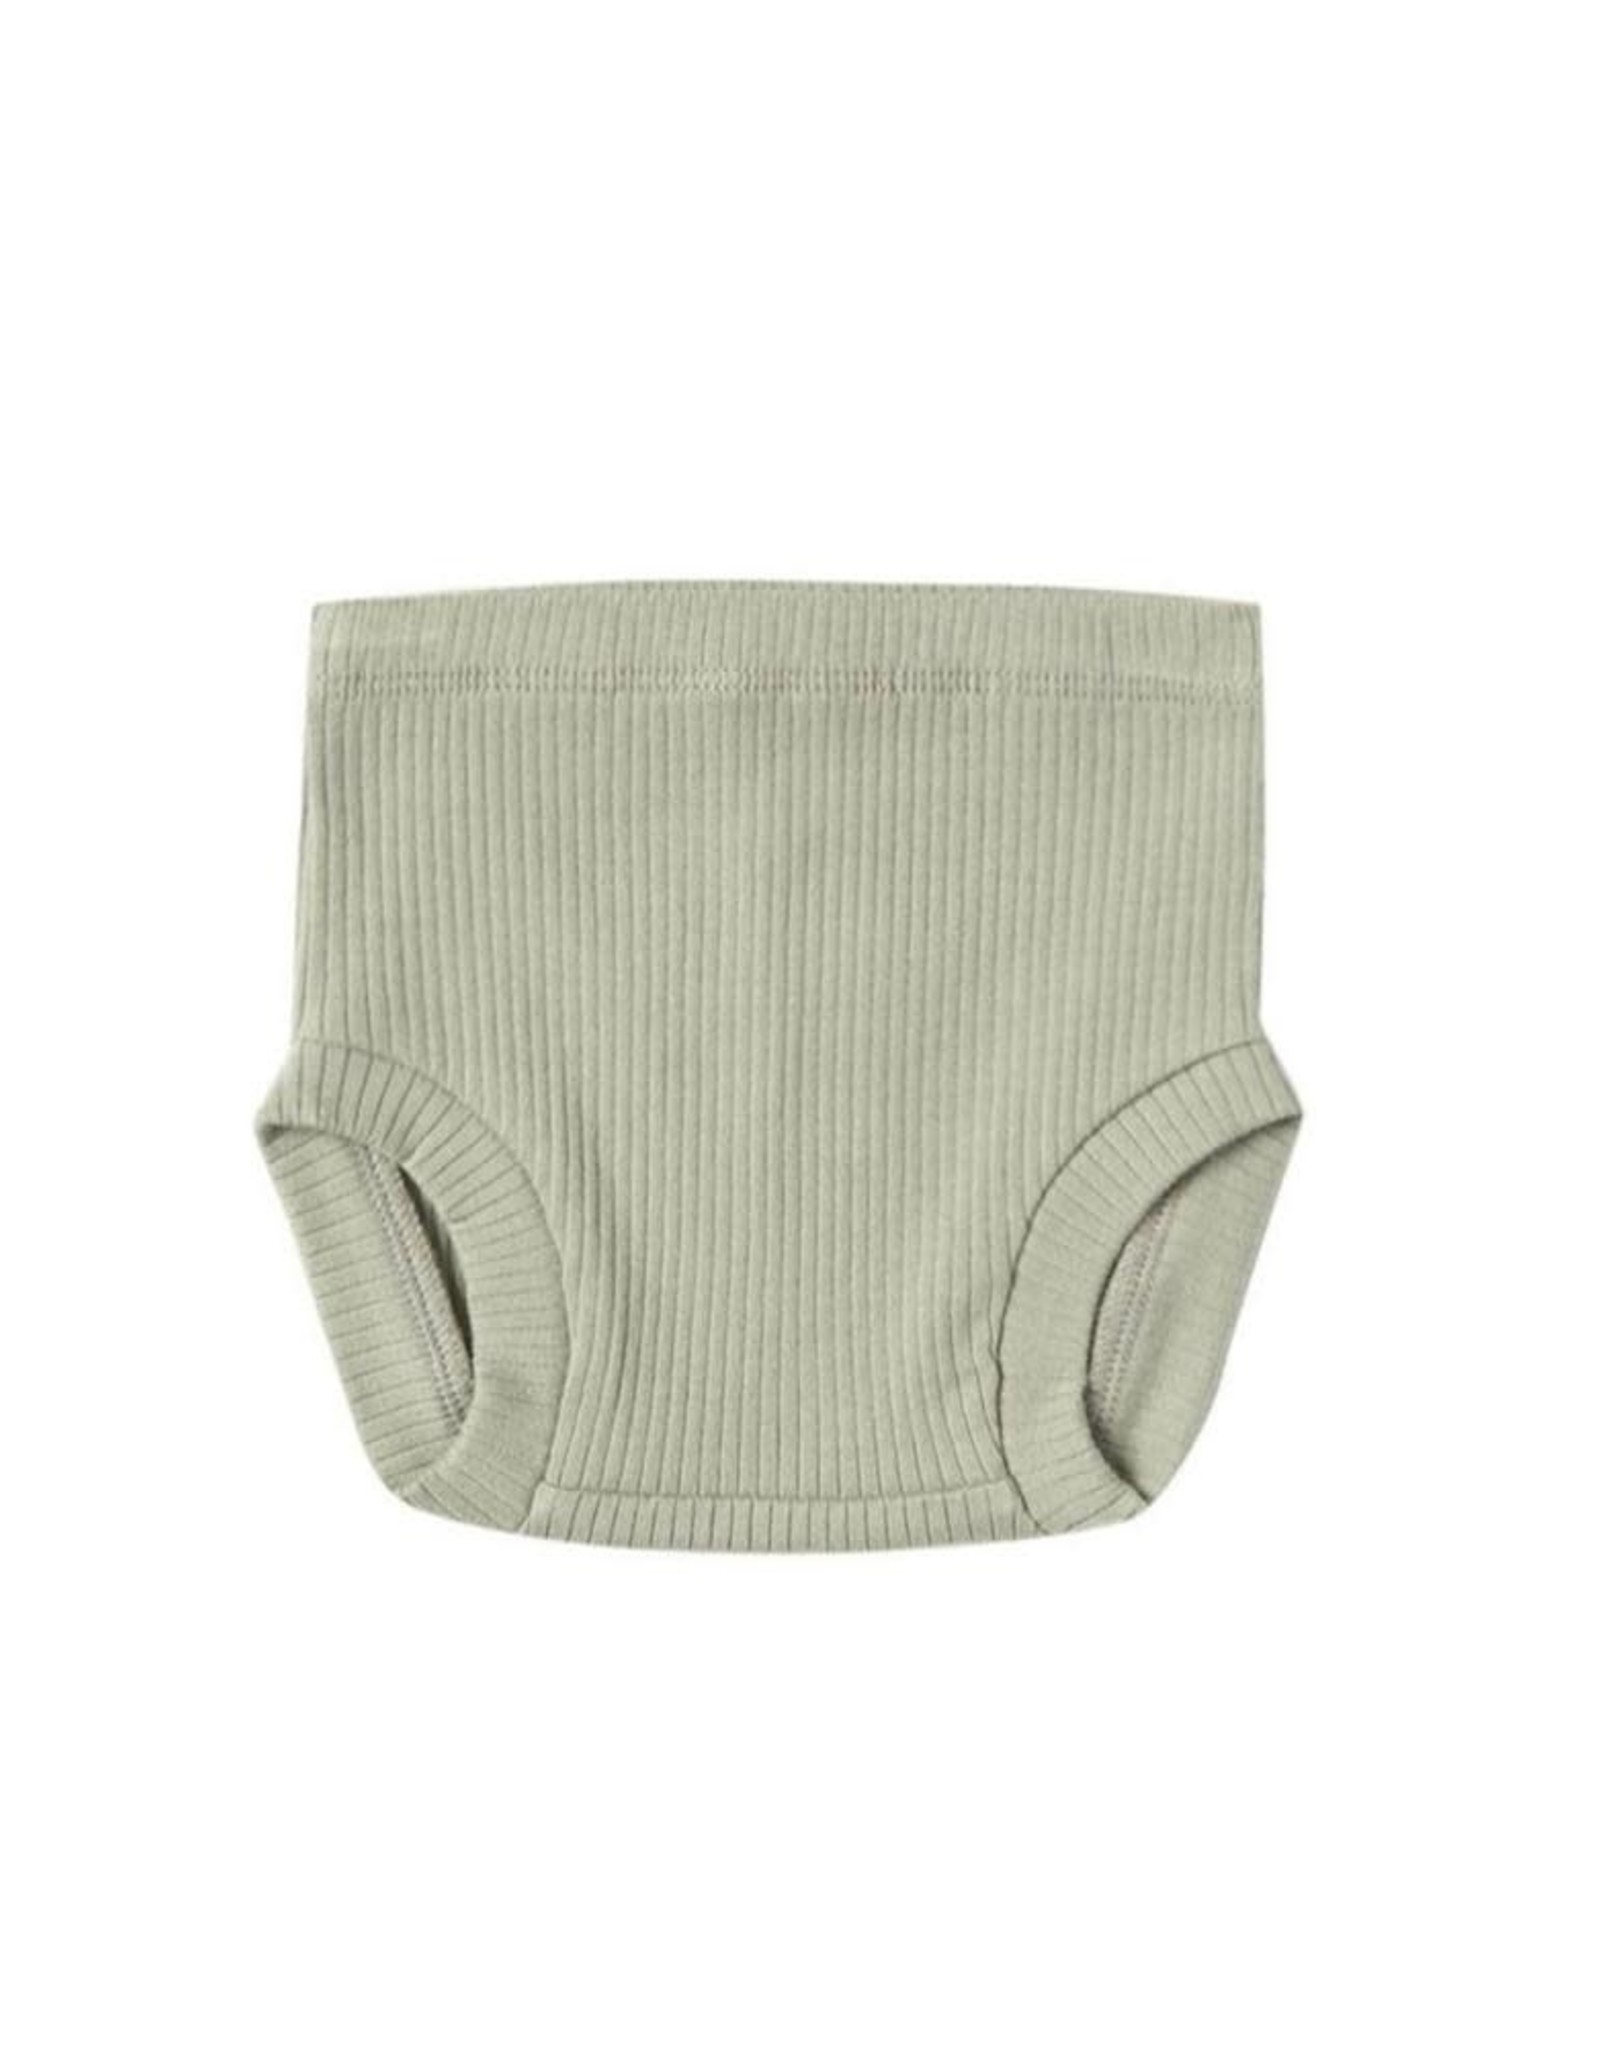 Quincy Mae Quincy Mae Ribbed Bloomer Sage